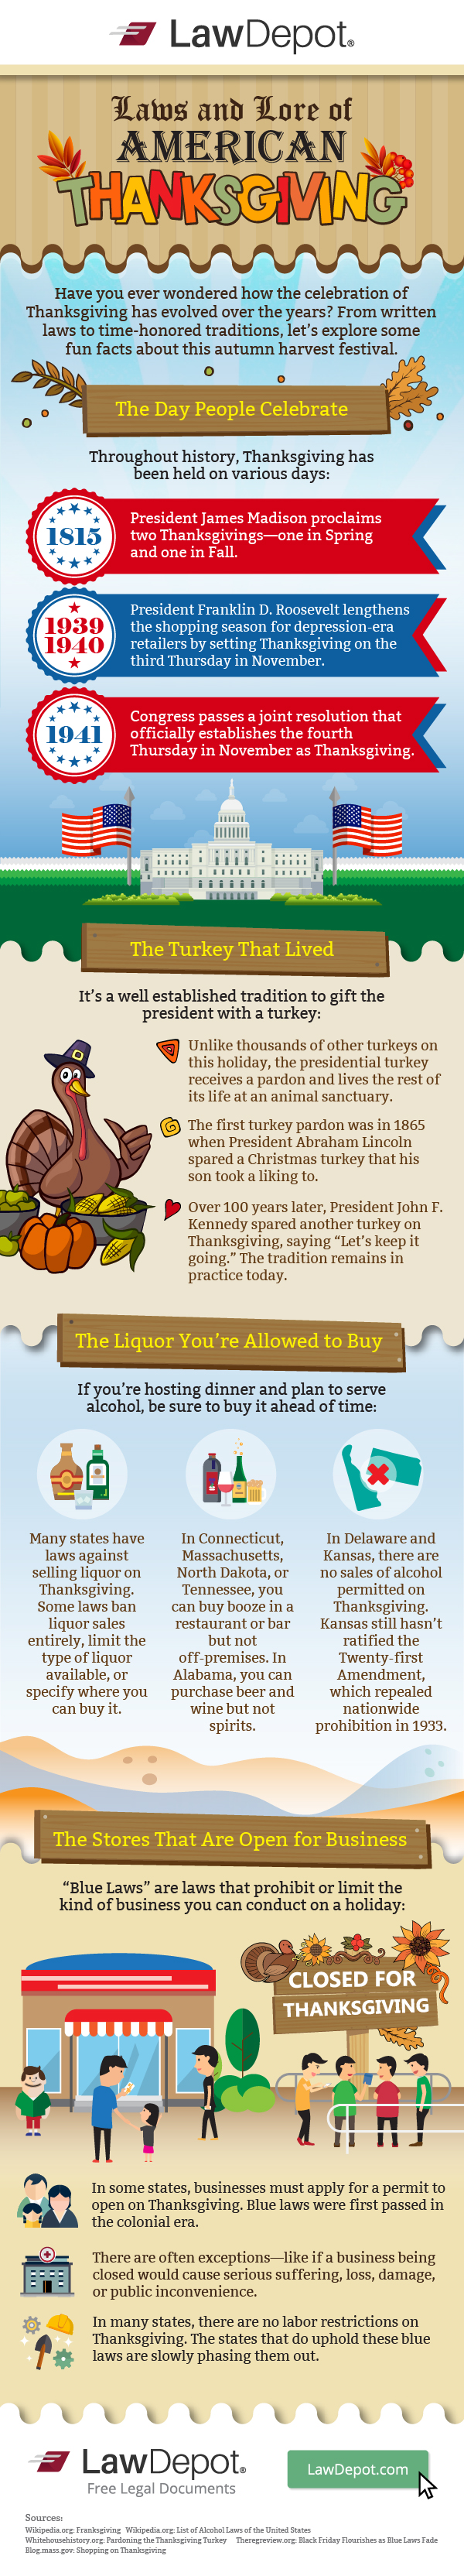 """Have you ever wondered how the celebration of Thanksgiving has evolved over the years? From written laws to time-honored traditions, let's explore some fun facts about this autumn harvest festival.  The Day People Celebrate Throughout history, Thanksgiving has been held on various days: 1815: President James Madison proclaims two Thanksgivings—one in spring and one in fall.  1939-1940: President Franklin D. Roosevelt lengthens the shopping season for depression-era retailers by setting Thanksgiving on the third Thursday in November. 1941: Congress passes a joint resolution that officially establishes the fourth Thursday in November as Thanksgiving.  The Turkey That Lived It's a well-established tradition to gift the president with a turkey:  Unlike thousands of other turkeys on this holiday, the presidential turkey receives a pardon and lives the rest of its life at an animal sanctuary. The first turkey pardon was in 1865 when President Abraham Lincoln spared a Christmas turkey that his son took a liking to. Over 100 years later, President John F. Kennedy spared another turkey on Thanksgiving, saying """"Let's keep it going."""" The tradition remains in practice today. The Liquor You're Allowed to Buy If you're hosting dinner and plan to serve alcohol, be sure to buy it ahead of time: Many states have laws against selling liquor on Thanksgiving. Some laws ban liquor sales entirely, limit the type of liquor available, or specify where you can buy it. In Connecticut, Massachusetts, North Dakota, or Tennessee, you can buy booze in a restaurant or bar but not off-premises. In Alabama, you can purchase beer and wine but not spirits. In Delaware and Kansas,there are no sales of alcohol permitted on Thanksgiving. Kansas still hasn't ratified the Twenty-first Amendment, which repealed nationwide prohibition in 1933. The Stores That Are Open for Business """"Blue Laws"""" are laws that prohibit or limit the kind of business you can conduct on a holiday: In some states, businesses must a"""